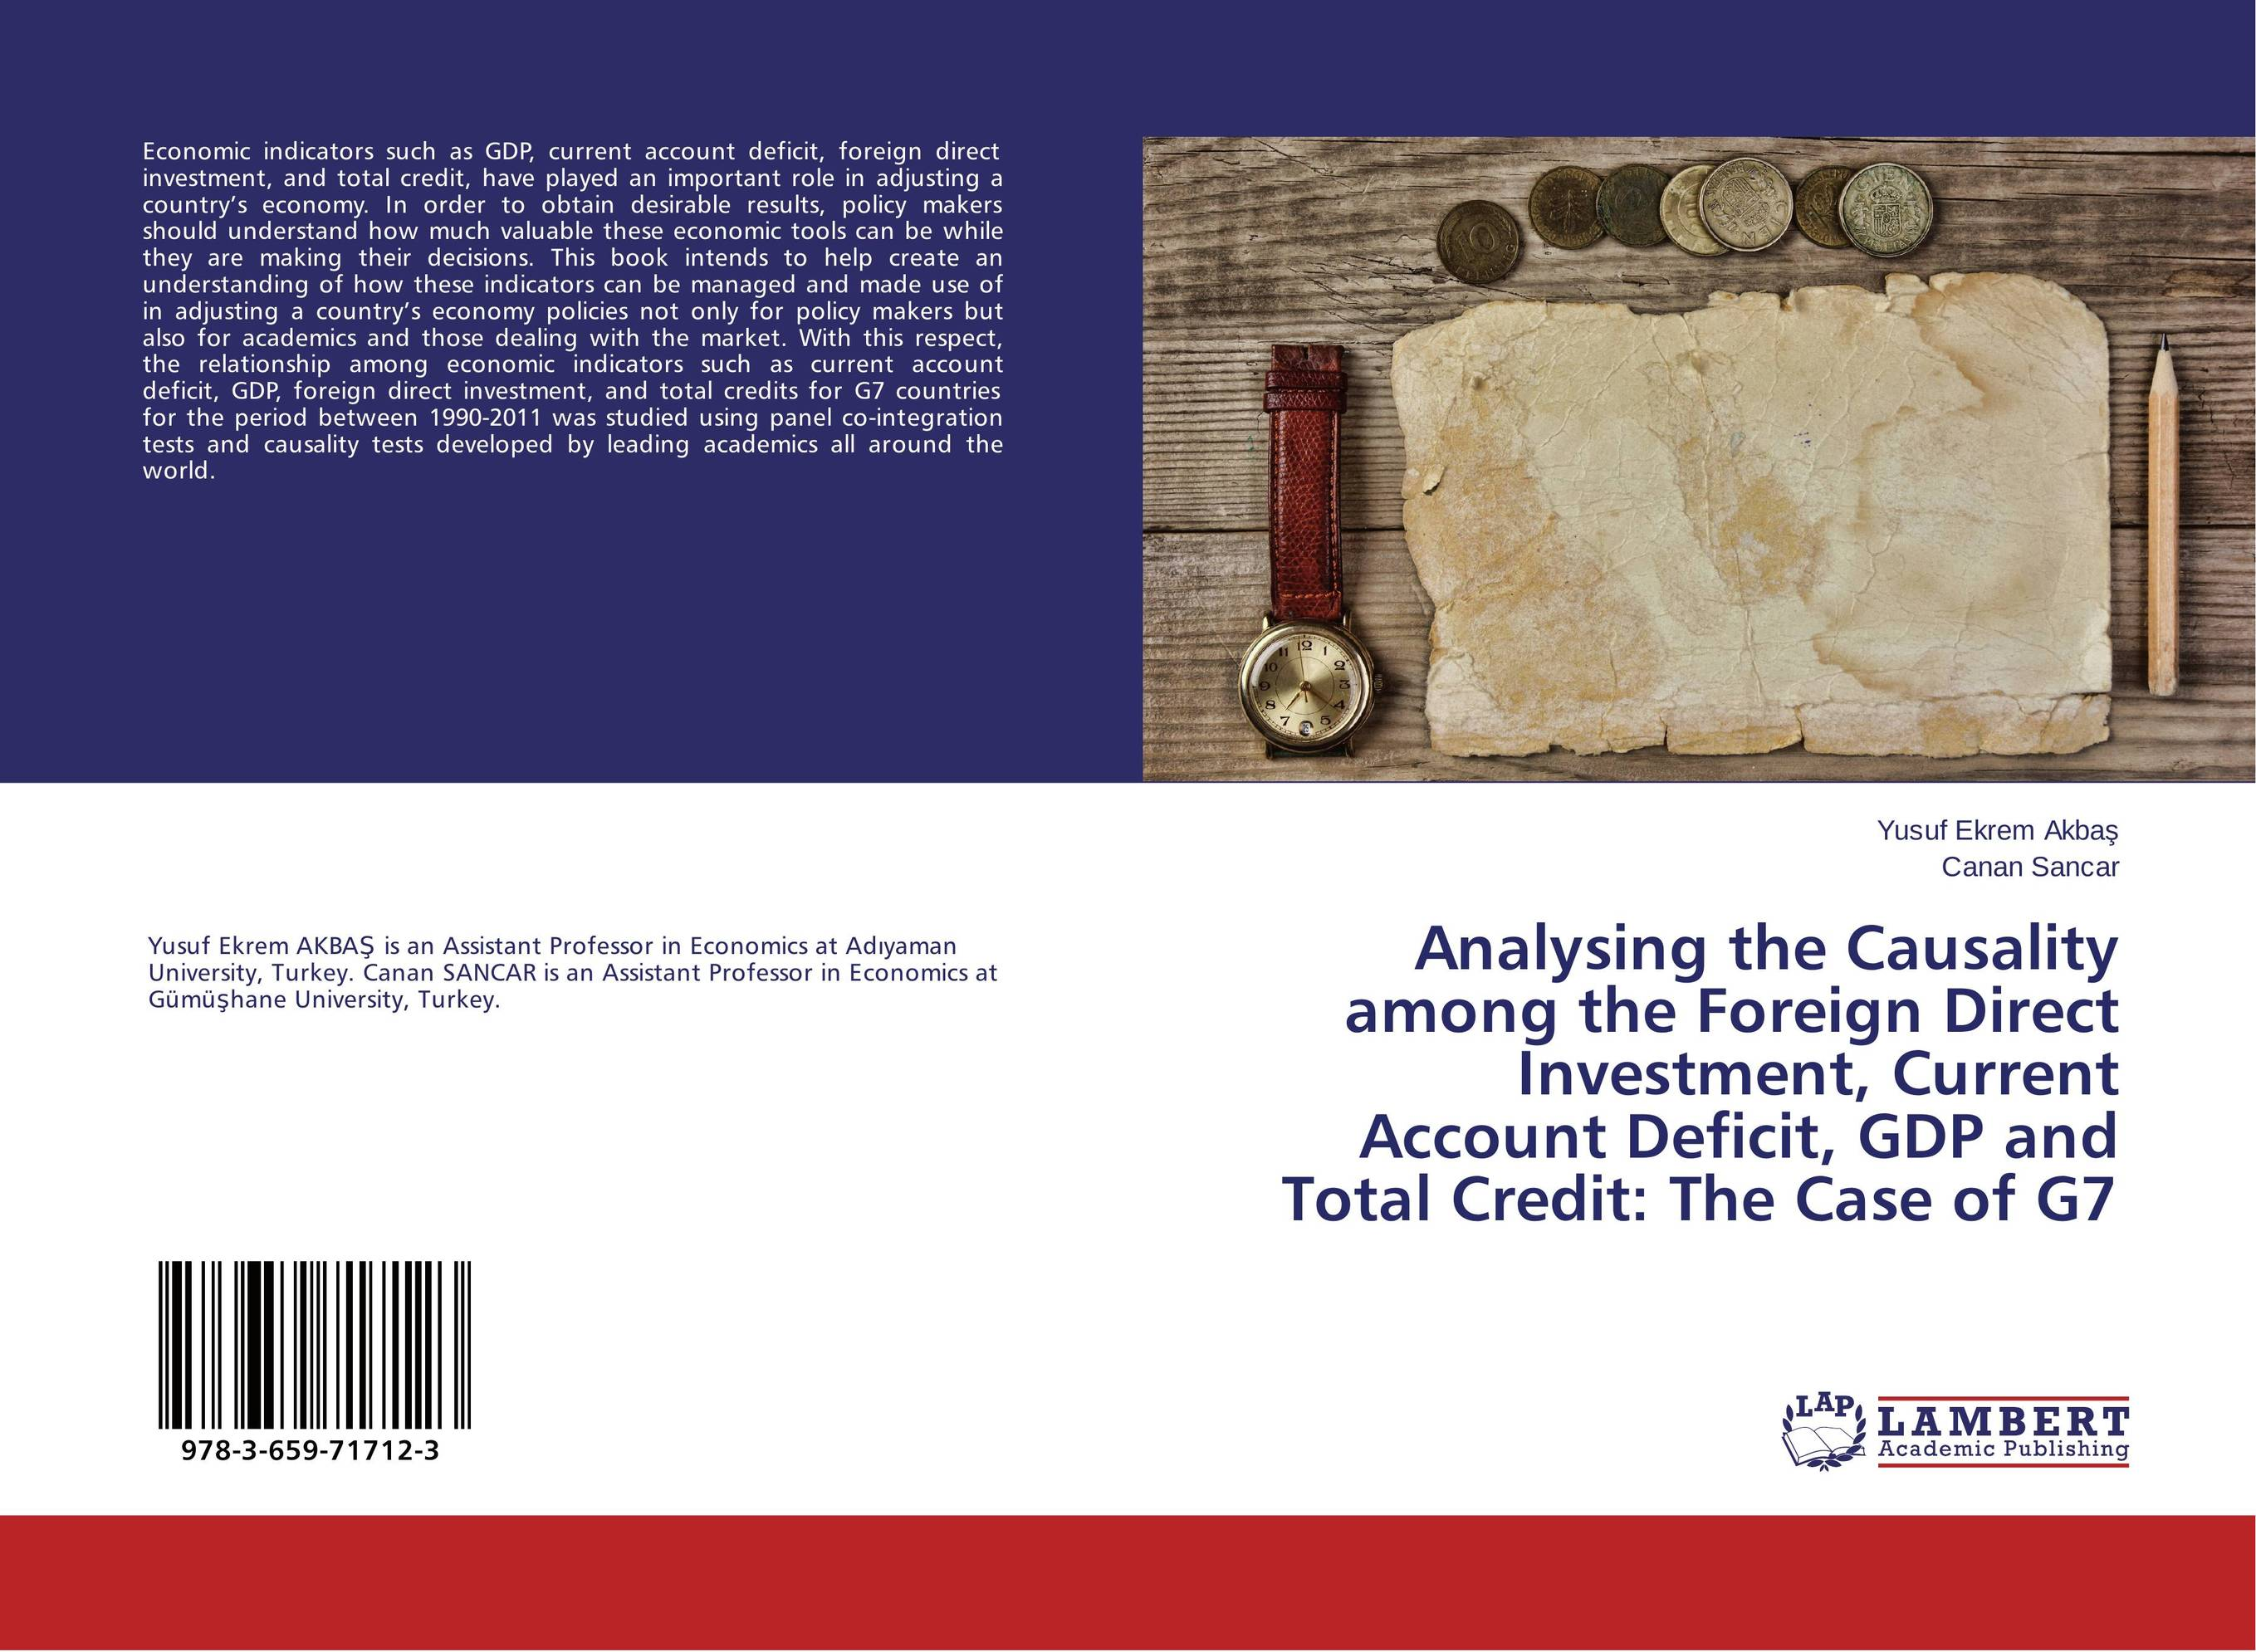 Analysing the Causality among the Foreign Direct Investment, Current Account Deficit, GDP and Total Credit: The Case of G7